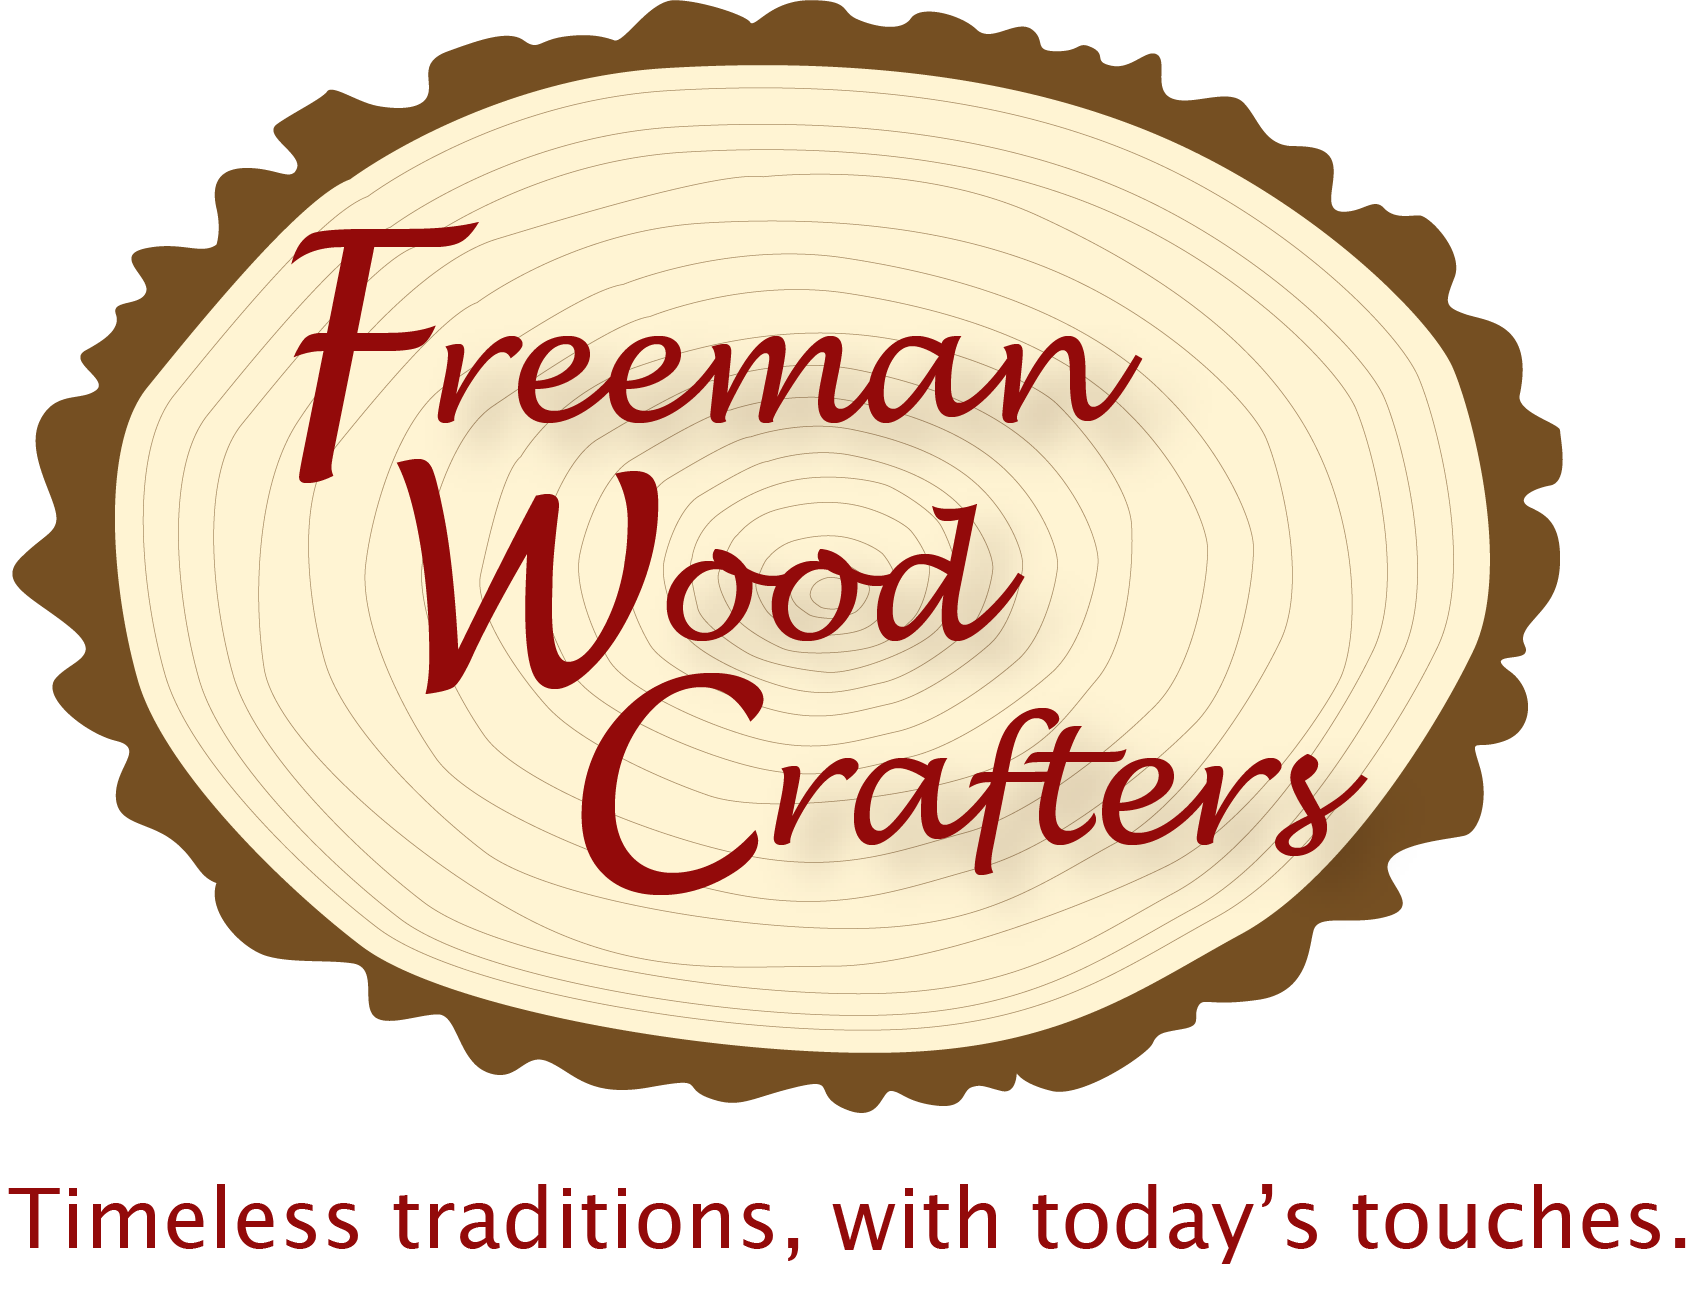 Freeman Wood Crafters